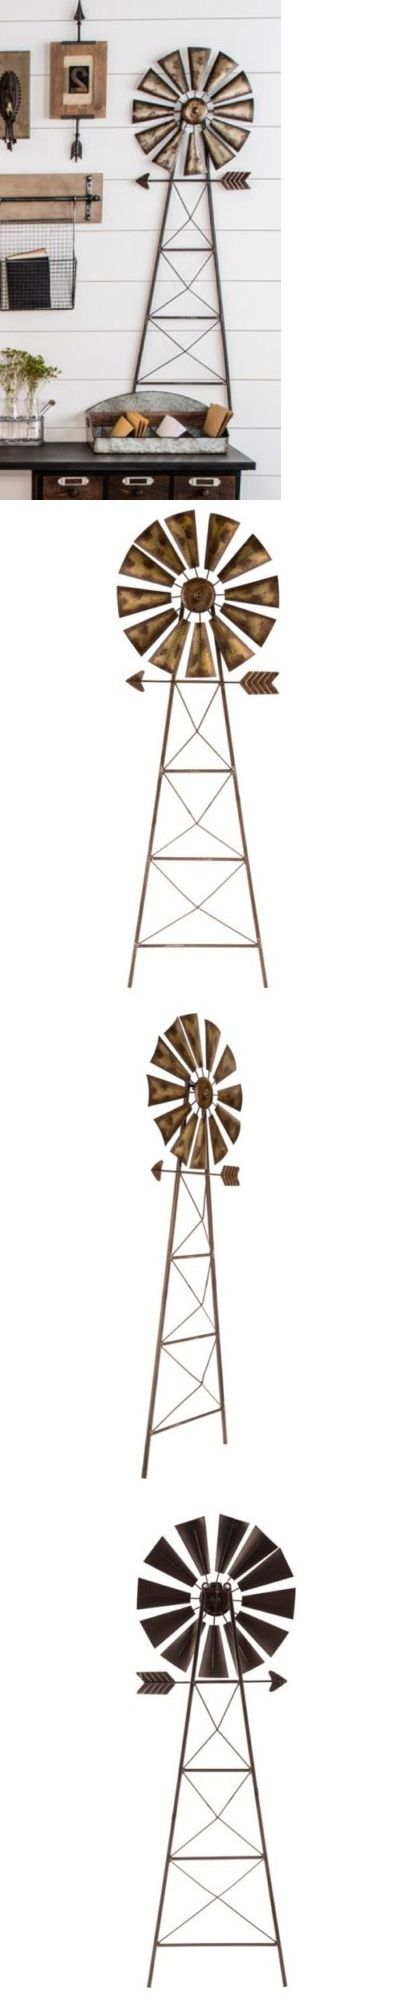 Wall Sculptures 166729: Rustic Metal Windmill Wall Decor Western Ranch Barn Farmhouse Large 43 X 14 -> BUY IT NOW ONLY: $49.99 on eBay!